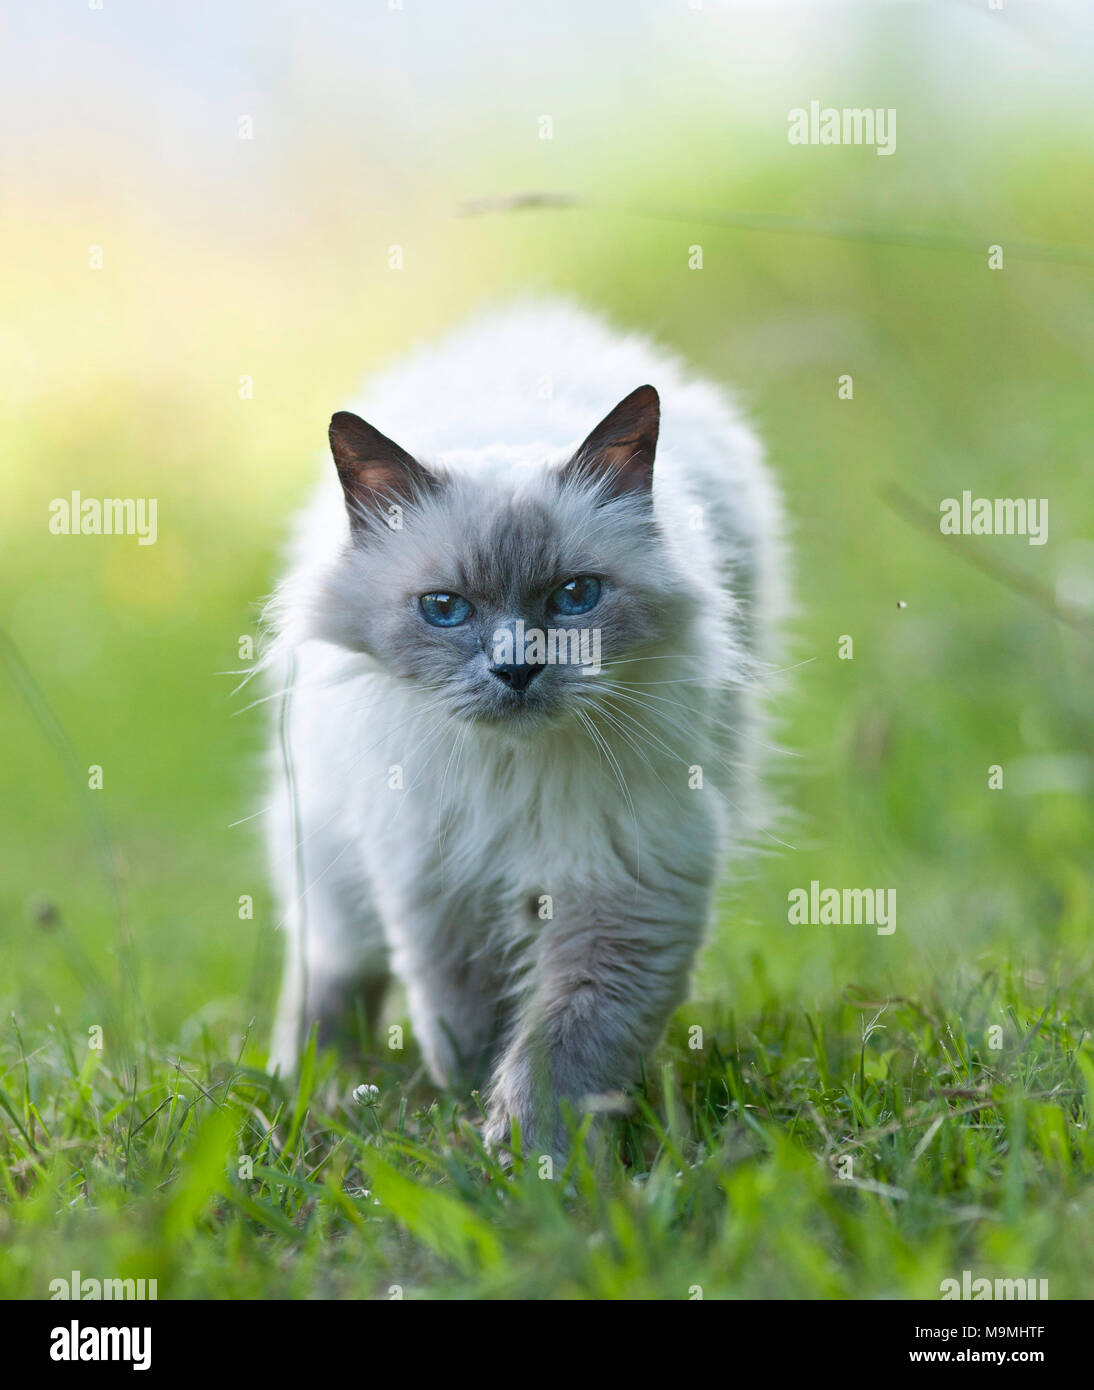 Sacred cat of Burma. Old cat walking on a meadow, seen head-on. Germany - Stock Image